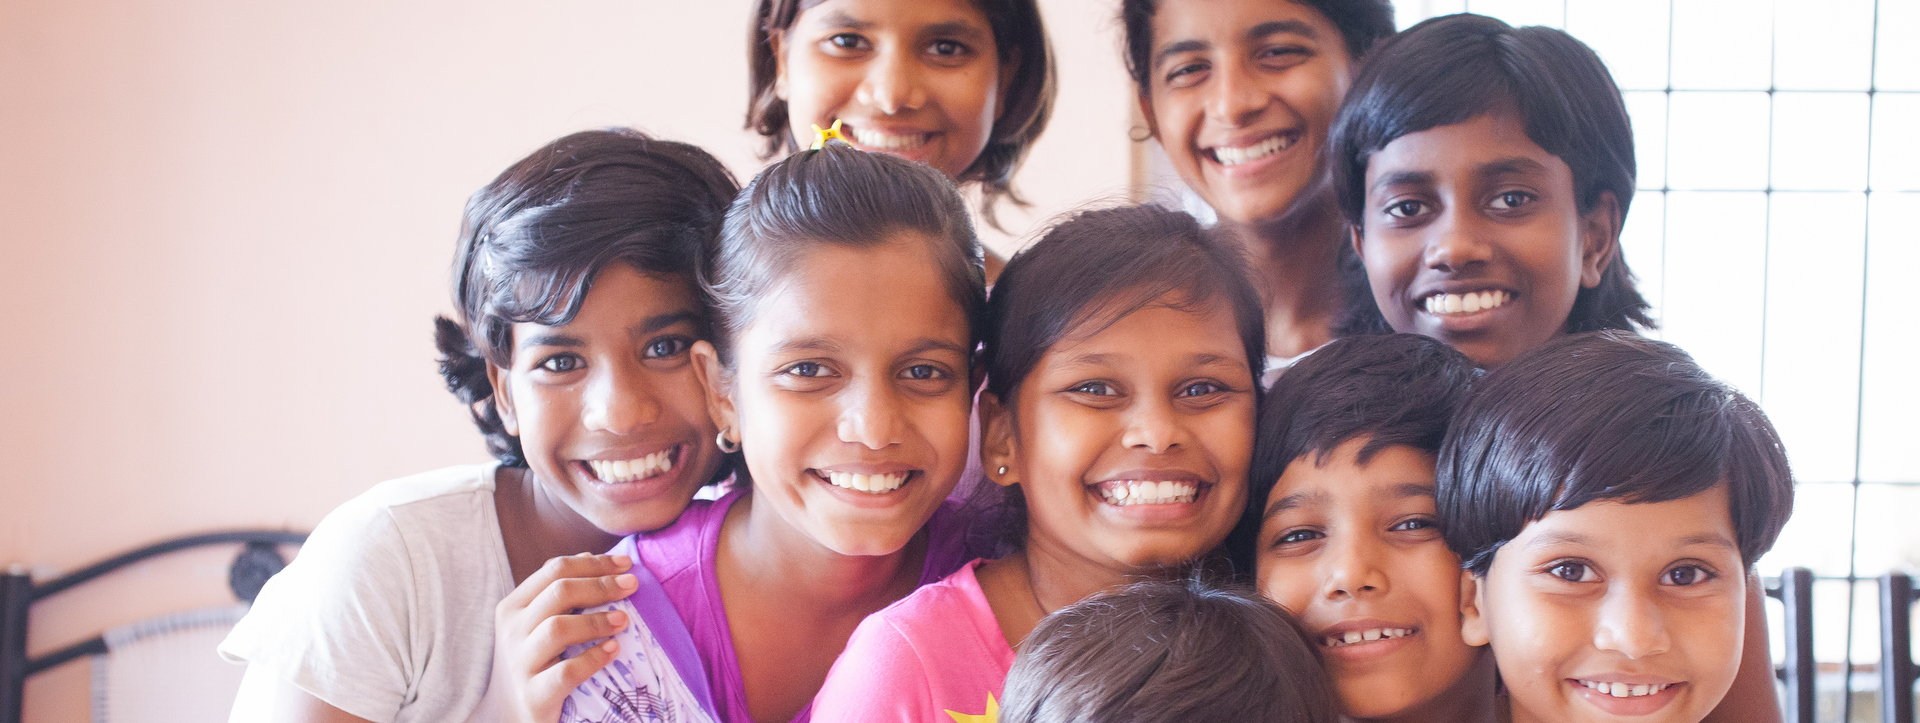 group-of-girls